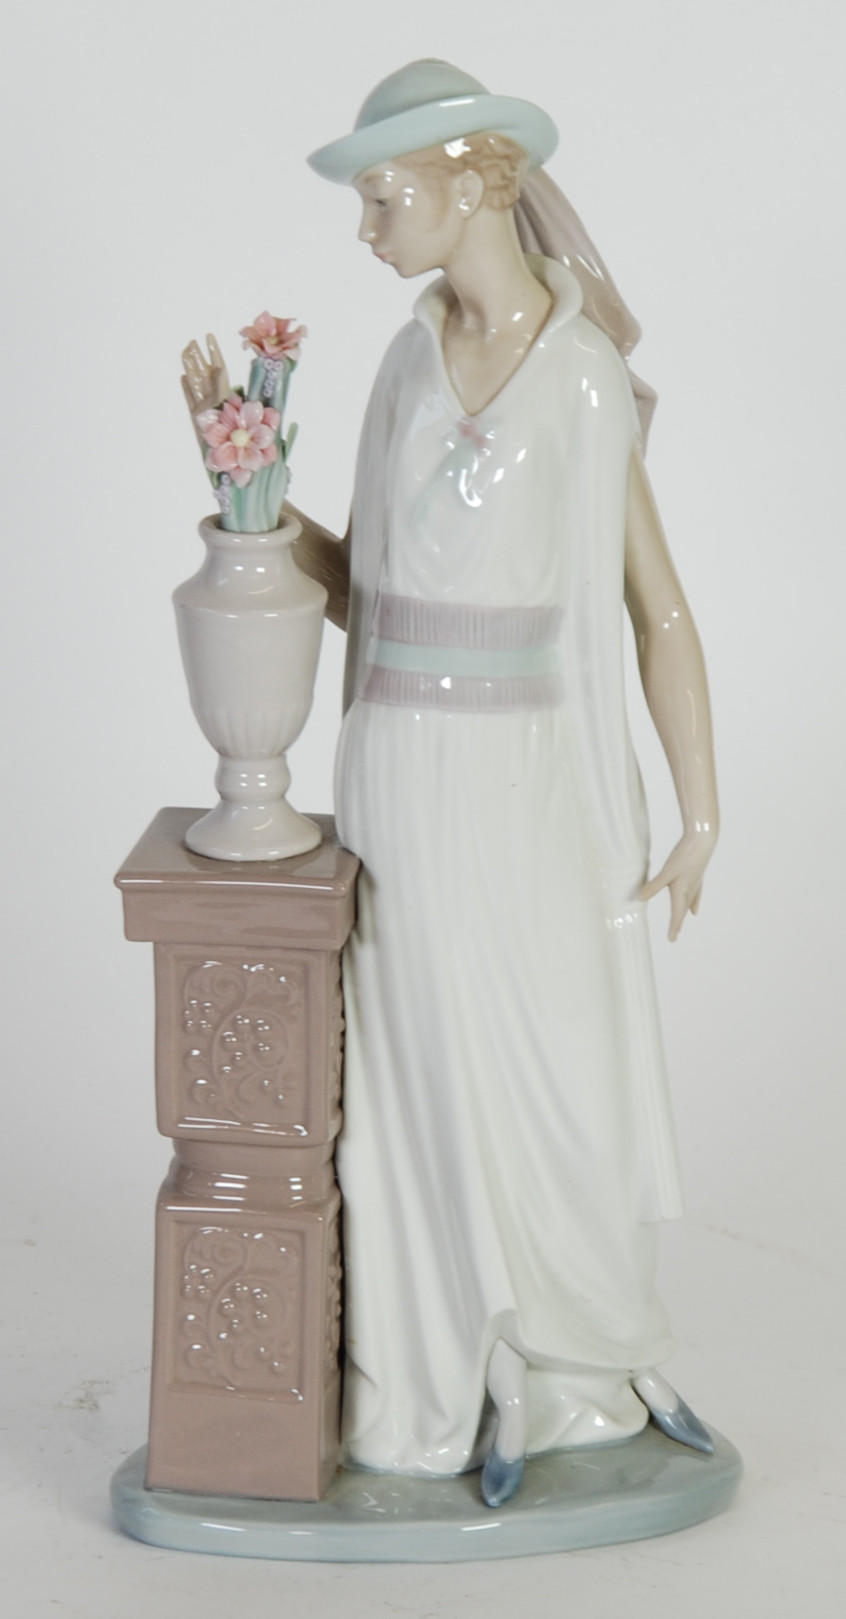 lladro vase flowers of lladro porcelain figure of a lady standing beside a vase of flowers for lot 333 lladro porcelain figure of a lady standing beside a vase of flowers on